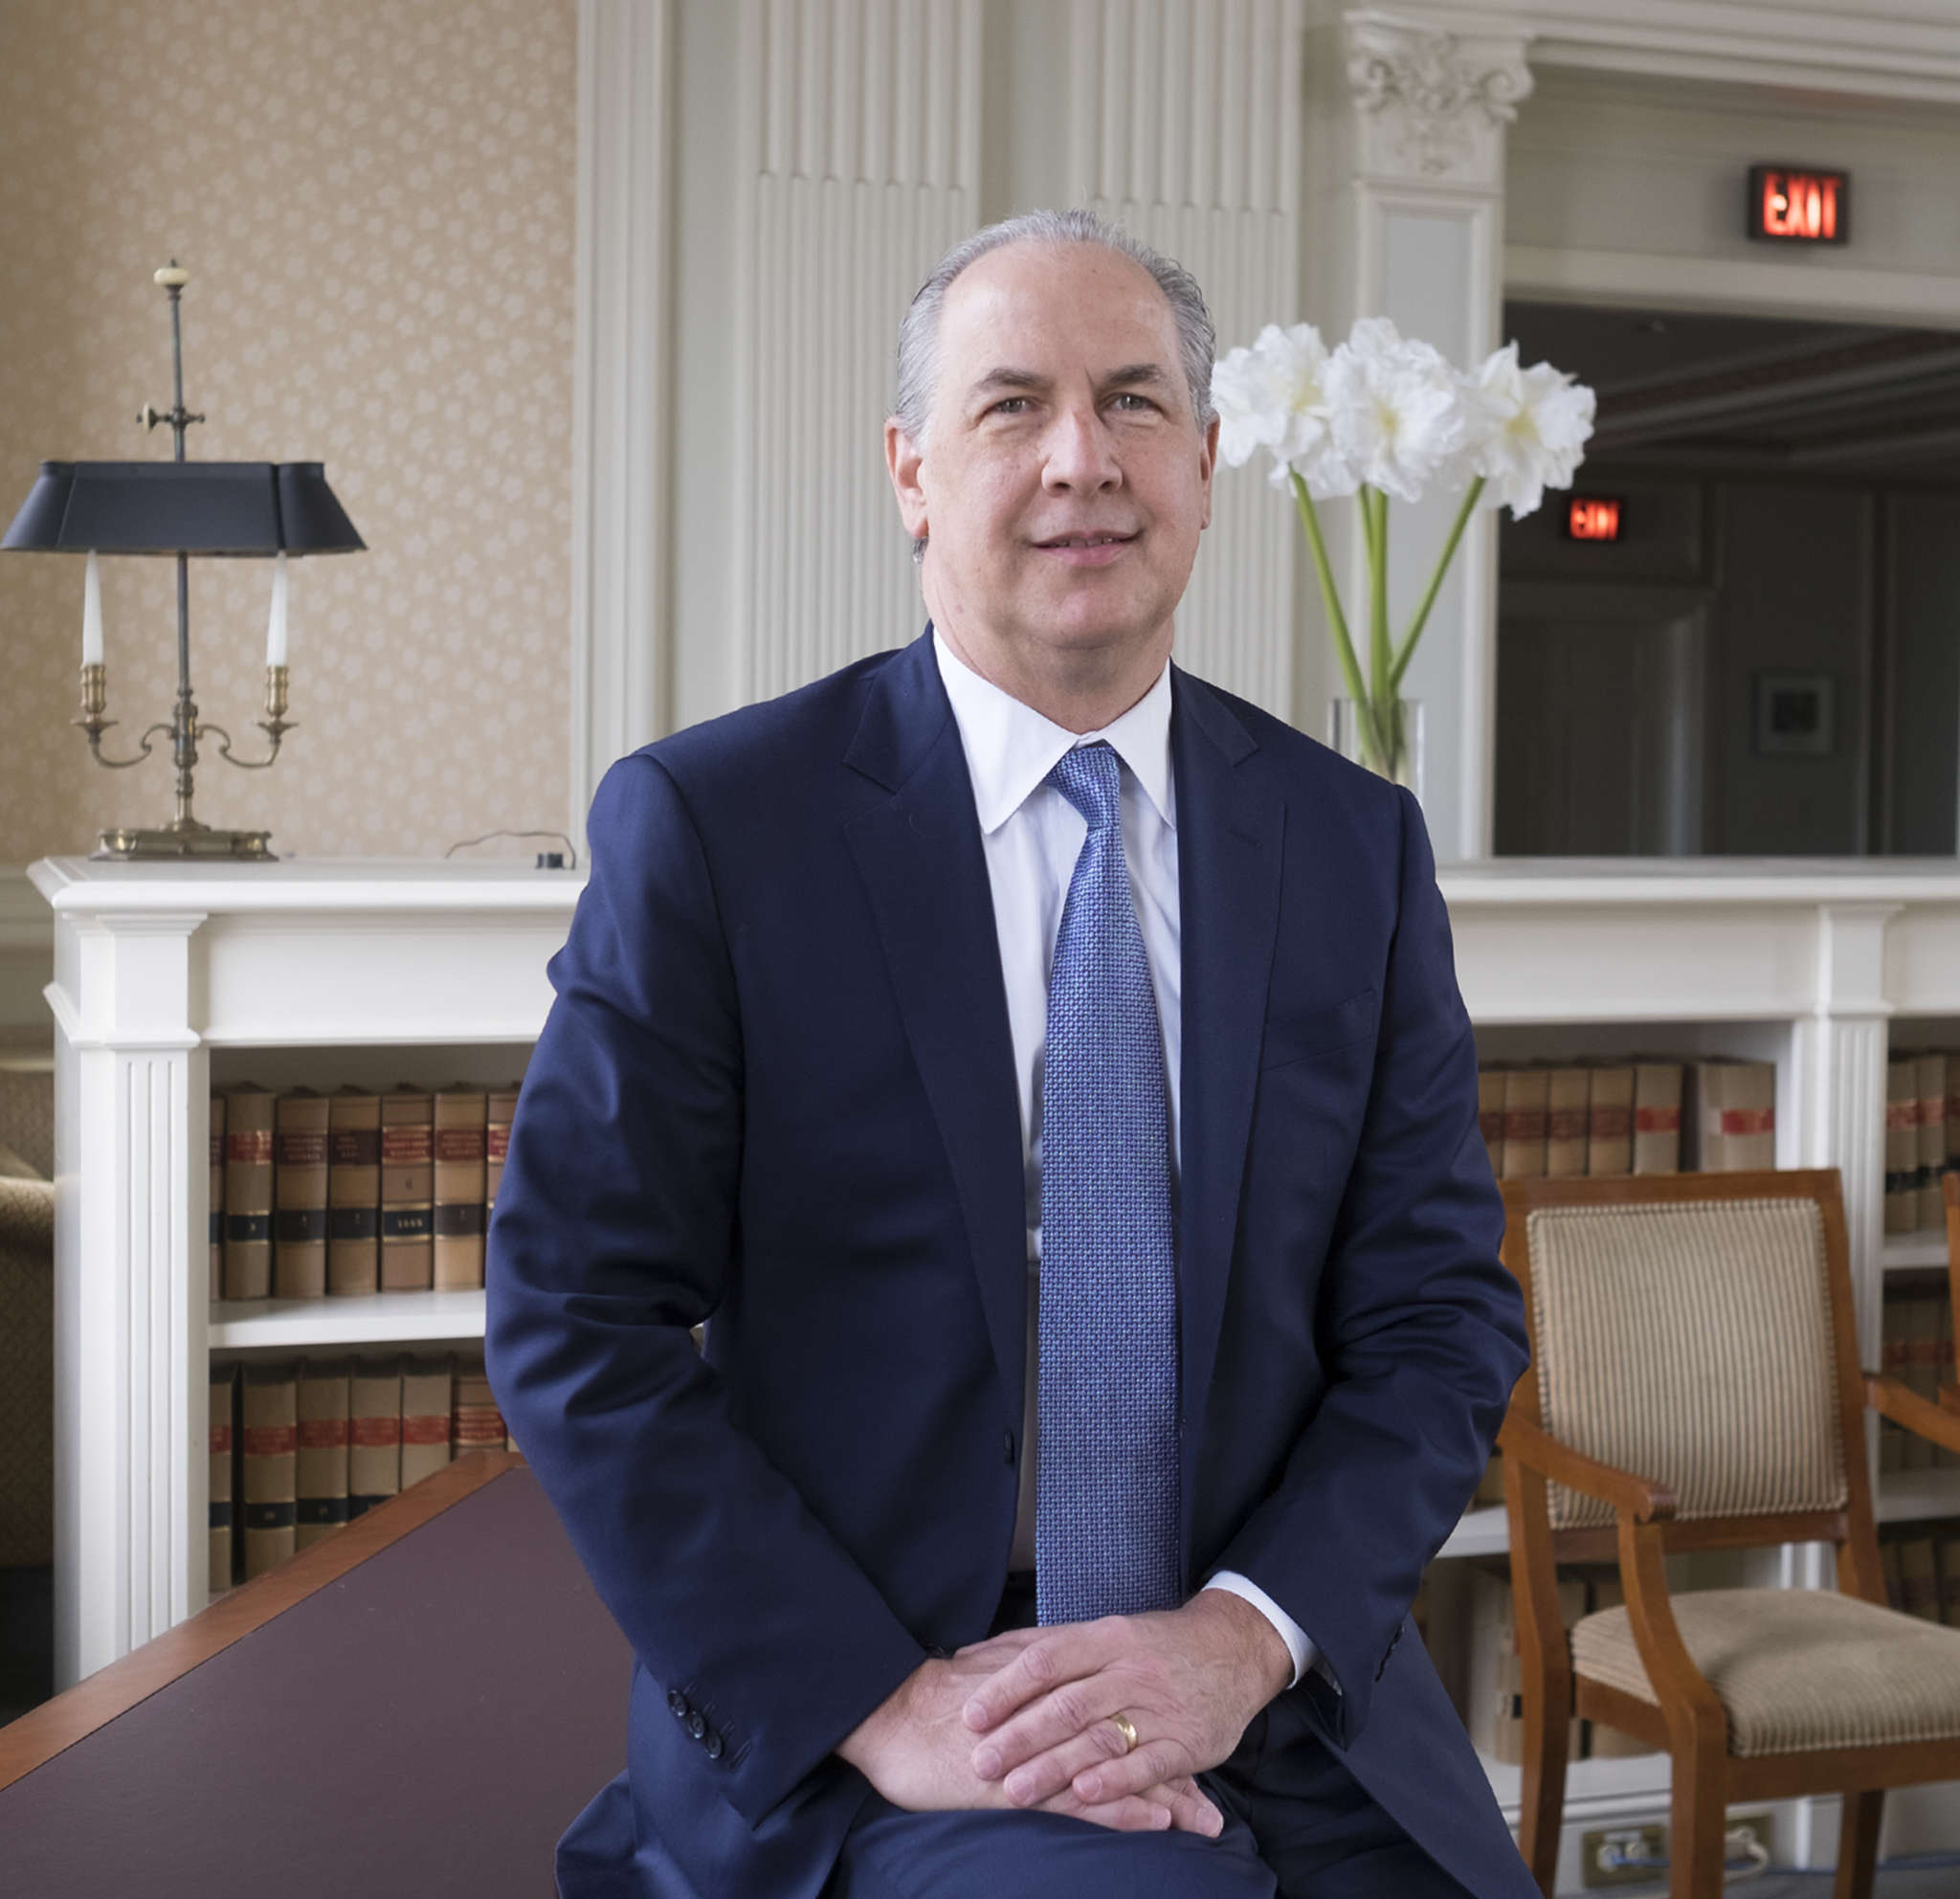 Louis A. Petroni was elected to a two-year term as chairman of the Montgomery McCracken Walker & Rhoads L.L.P. law firm.